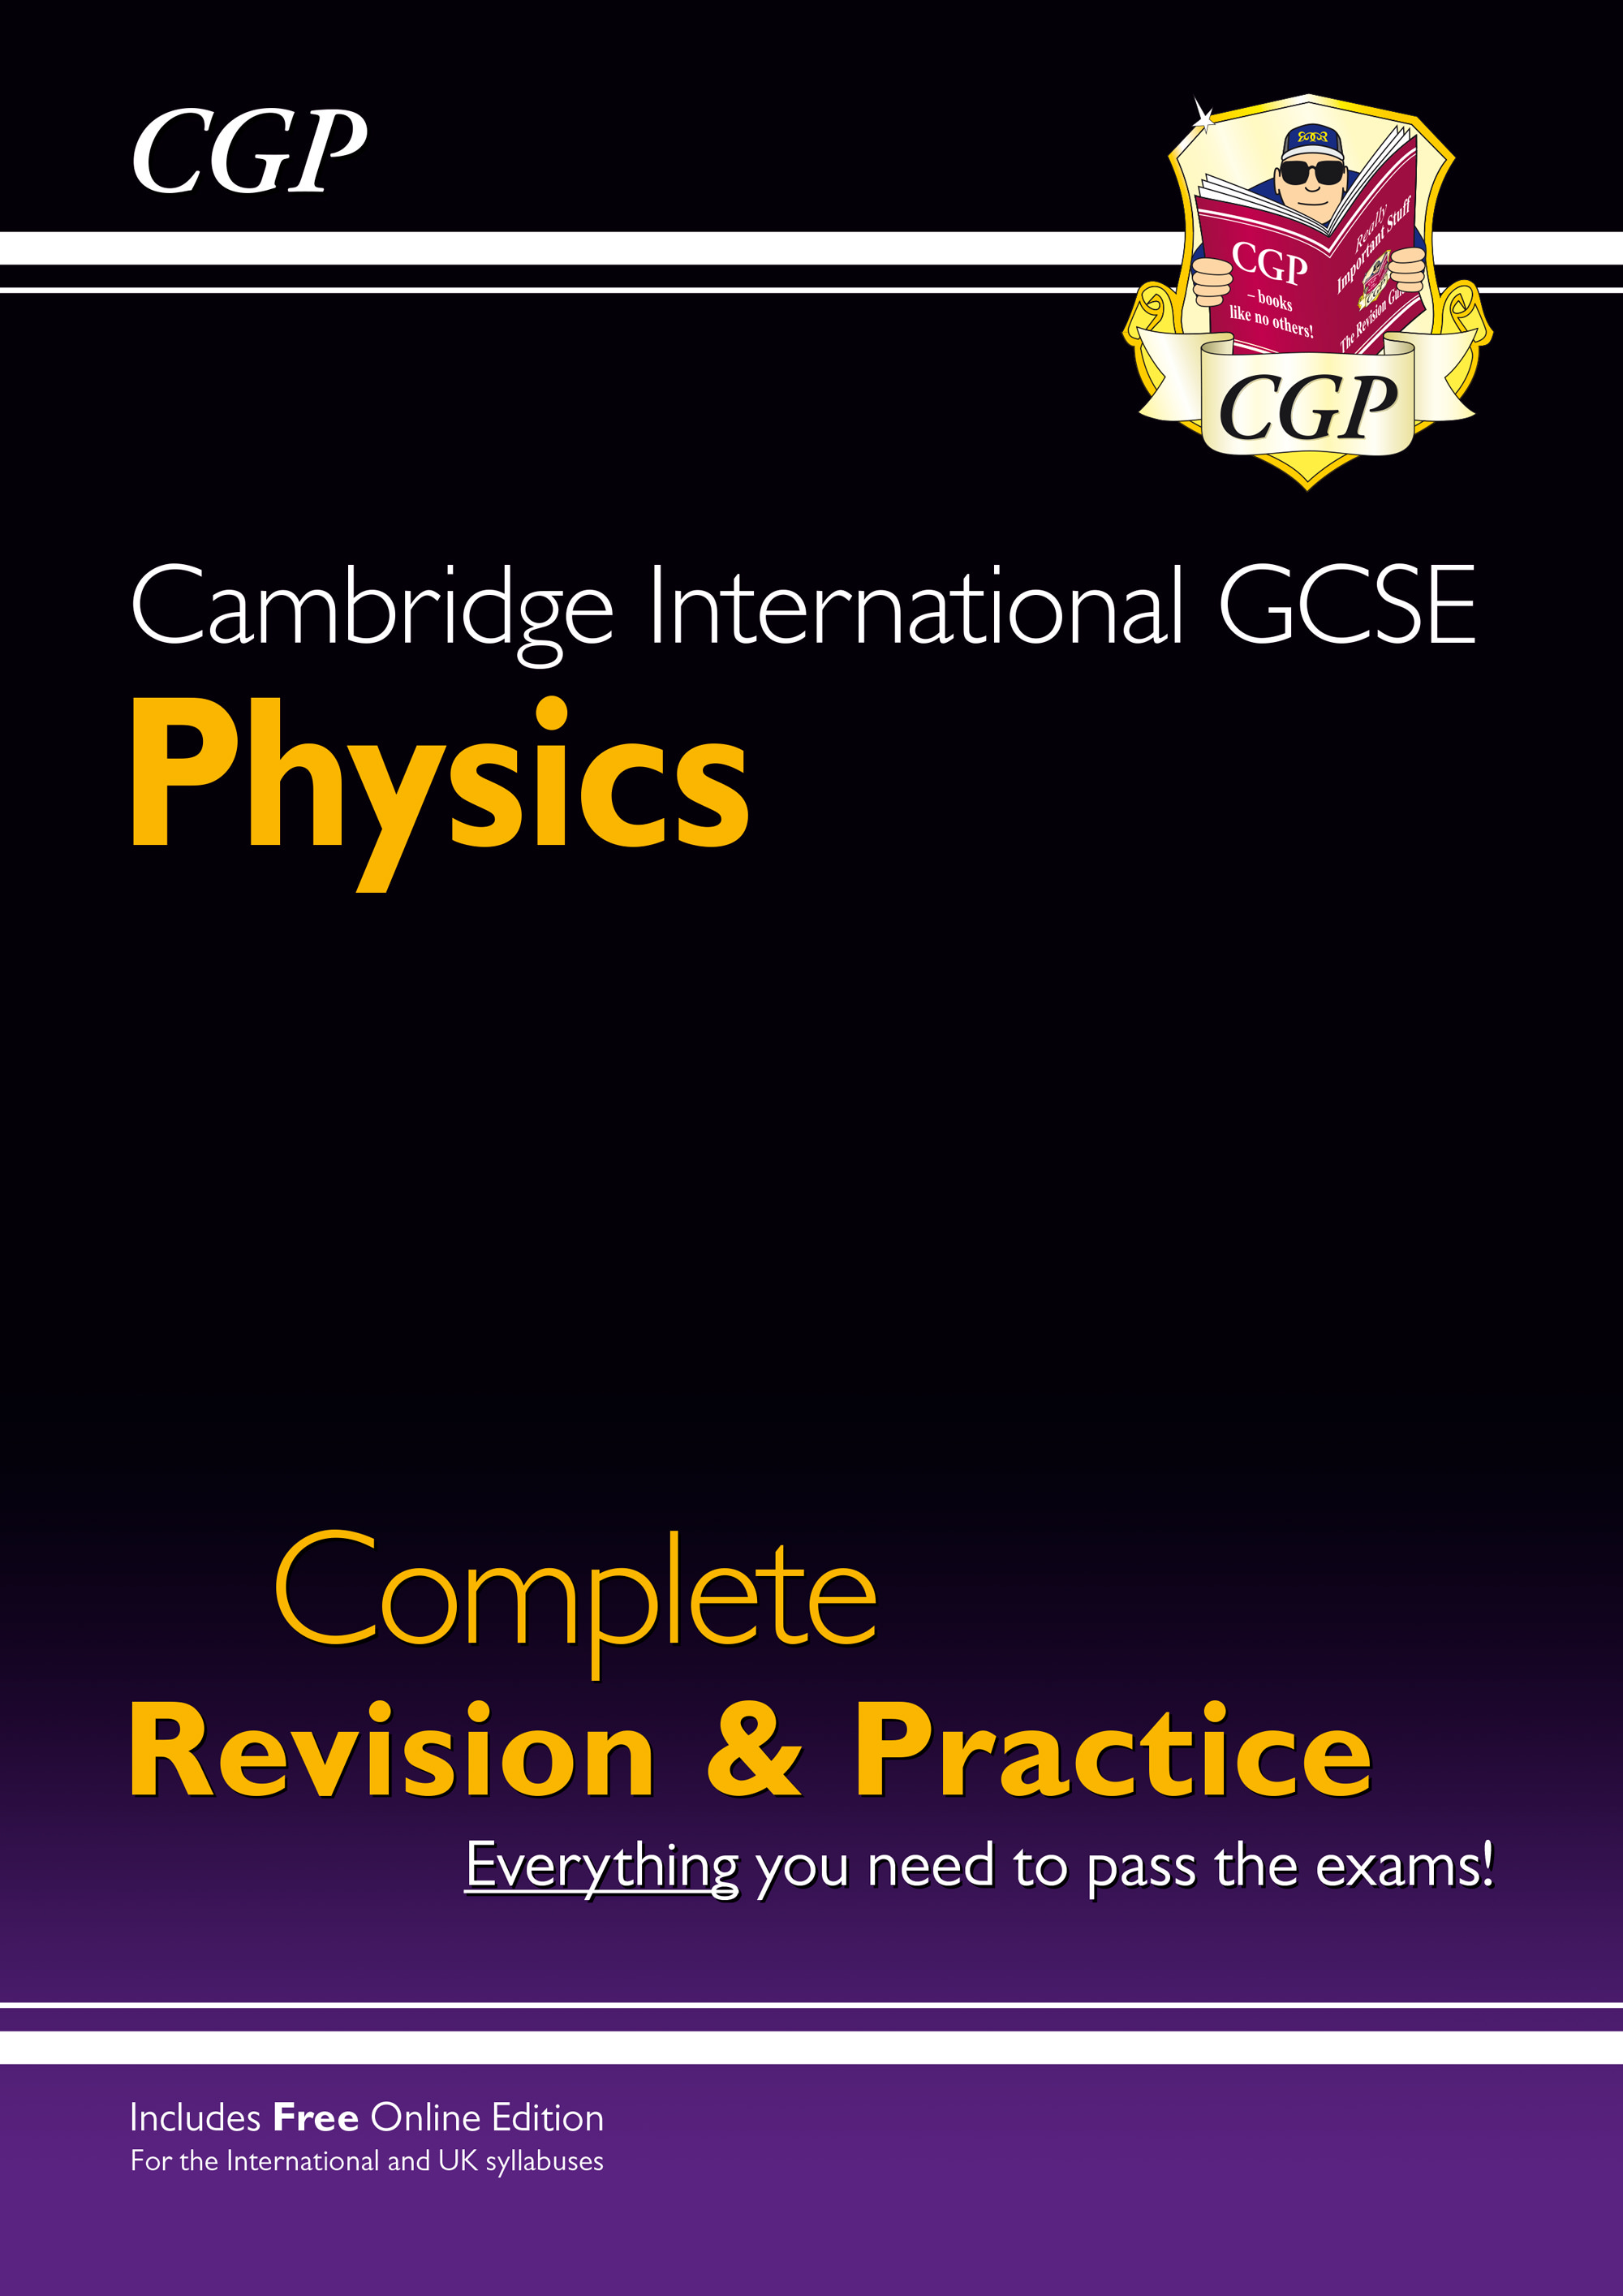 PISI41 - New Cambridge International GCSE Physics Complete Revision & Practice: Core & Extended + On